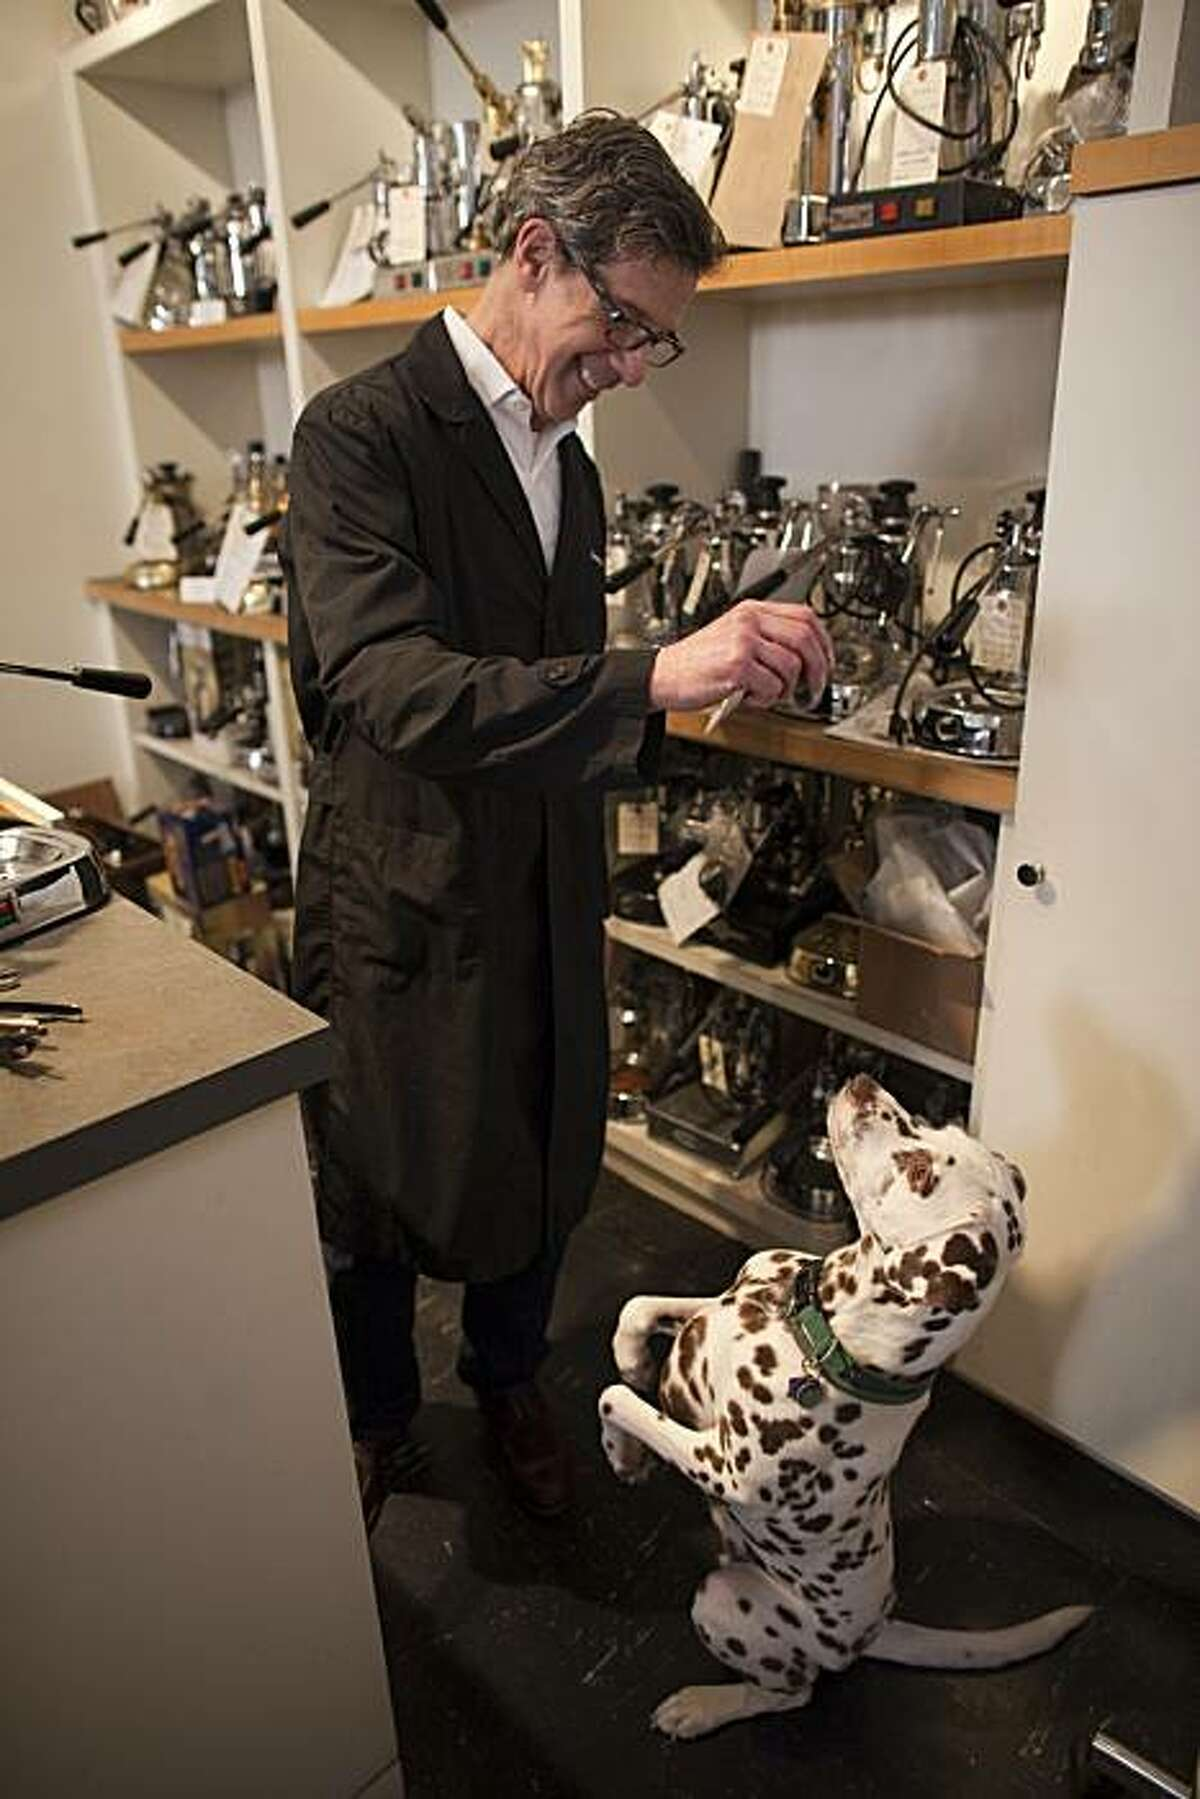 Christopher Cara with his 11 year old Liver Spotted Dalmatian, Carlotta photographed at Thomas Cara LTD on January 31, 2011 in San Francisco, California. Photograph by David Paul Morris/Special to the Chronicle